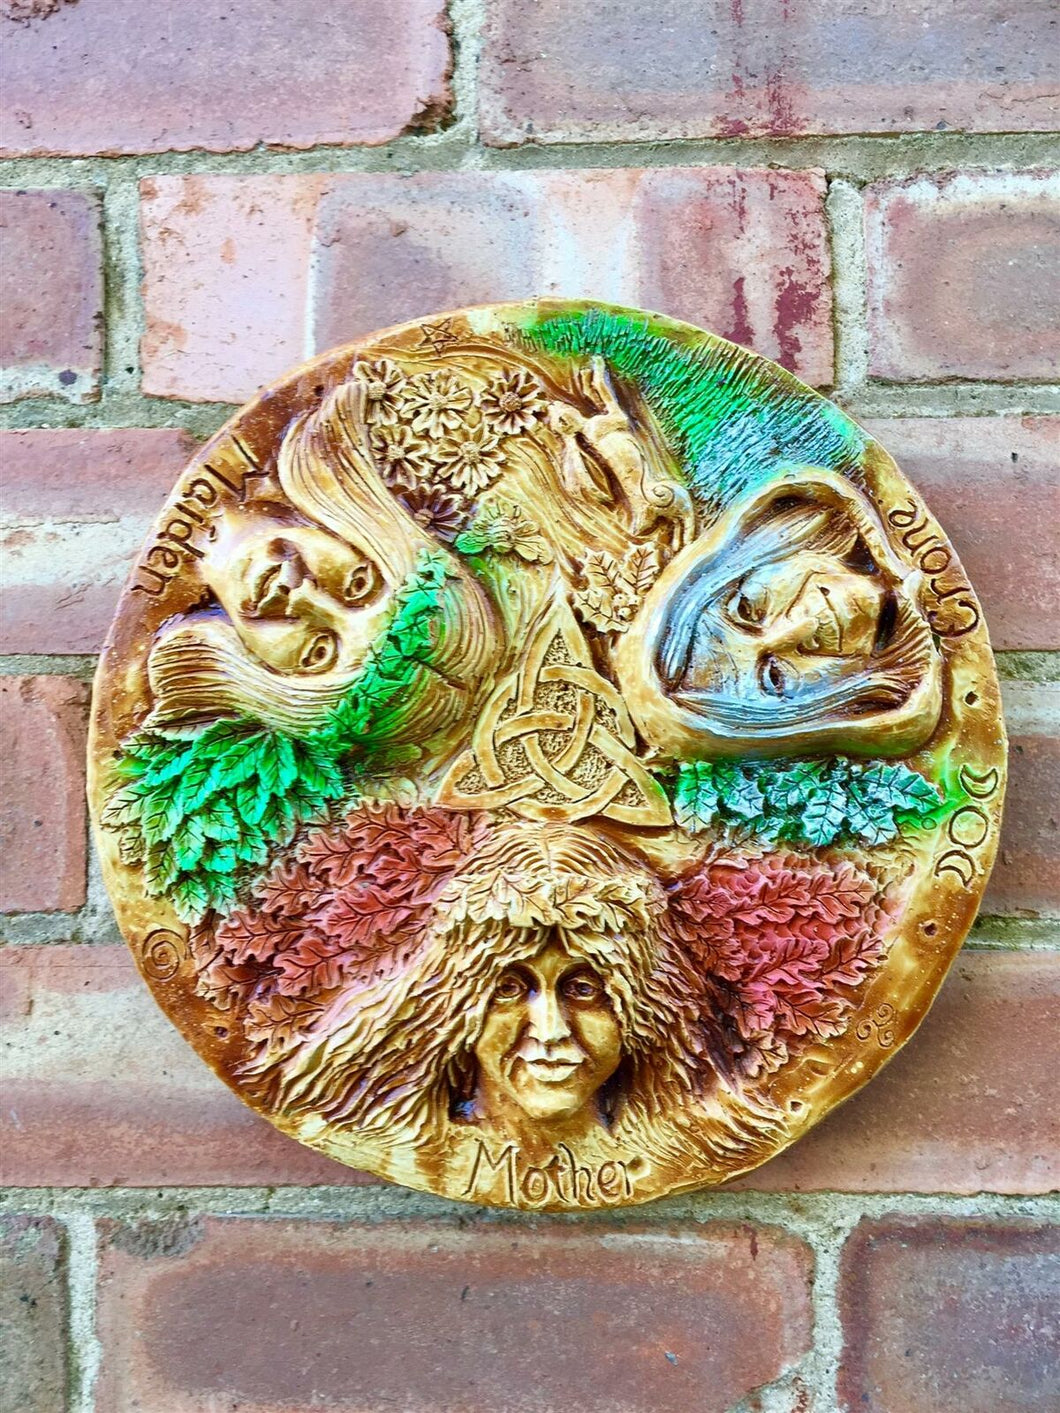 Pagan Wheel of the Year Triple Moon Goddess Wall Plaque Wiccan Altar Sculpture